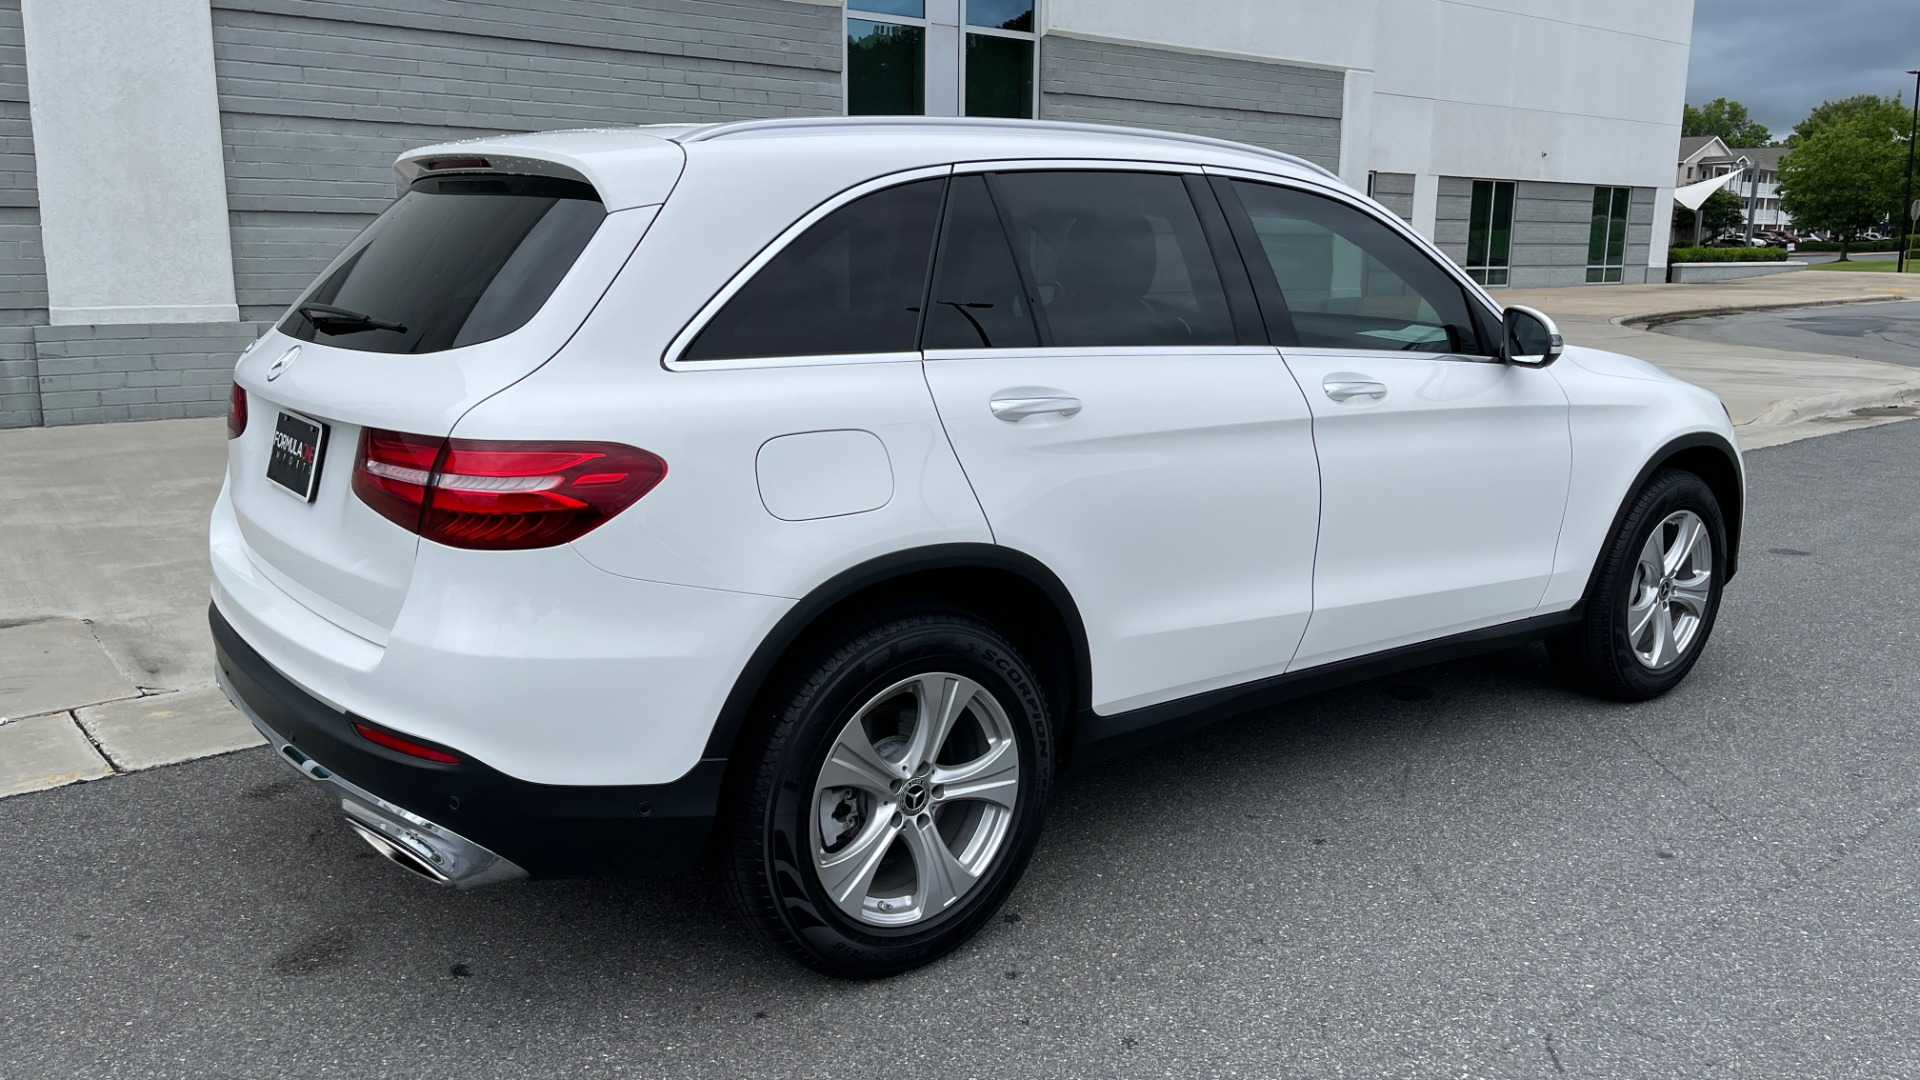 Used 2018 Mercedes-Benz GLC 300 PREMIUM / PANO-ROOF / HTD STS / PARK ASST / REARVIEW for sale $34,613 at Formula Imports in Charlotte NC 28227 2